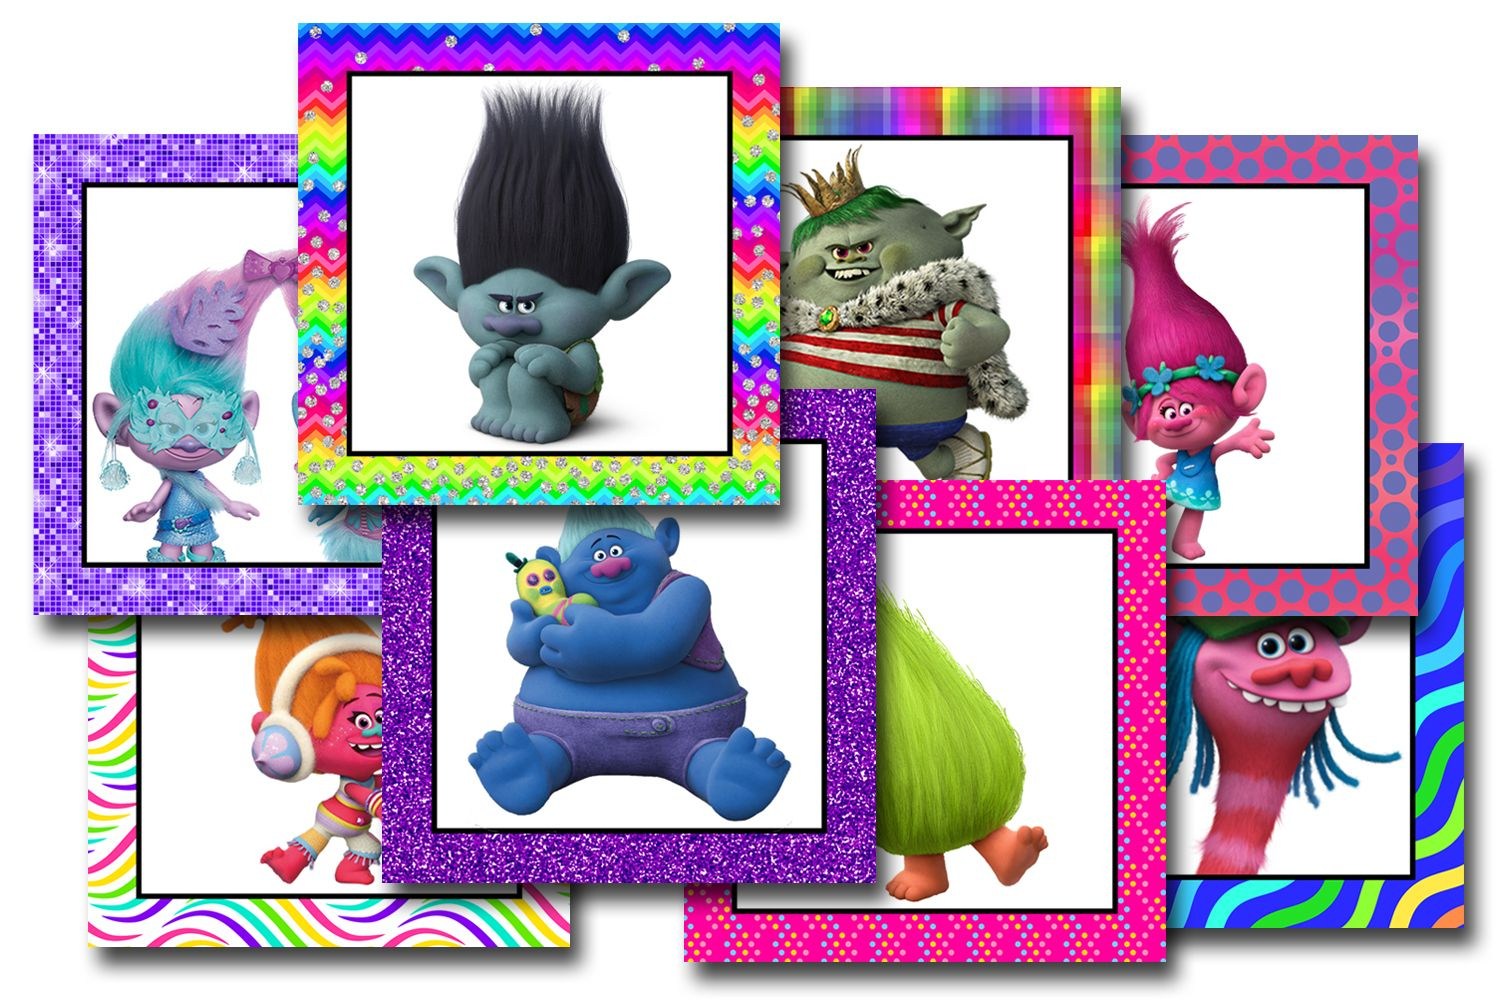 Trolls Free Printable Bingo Cards - Trolls Birthday Party